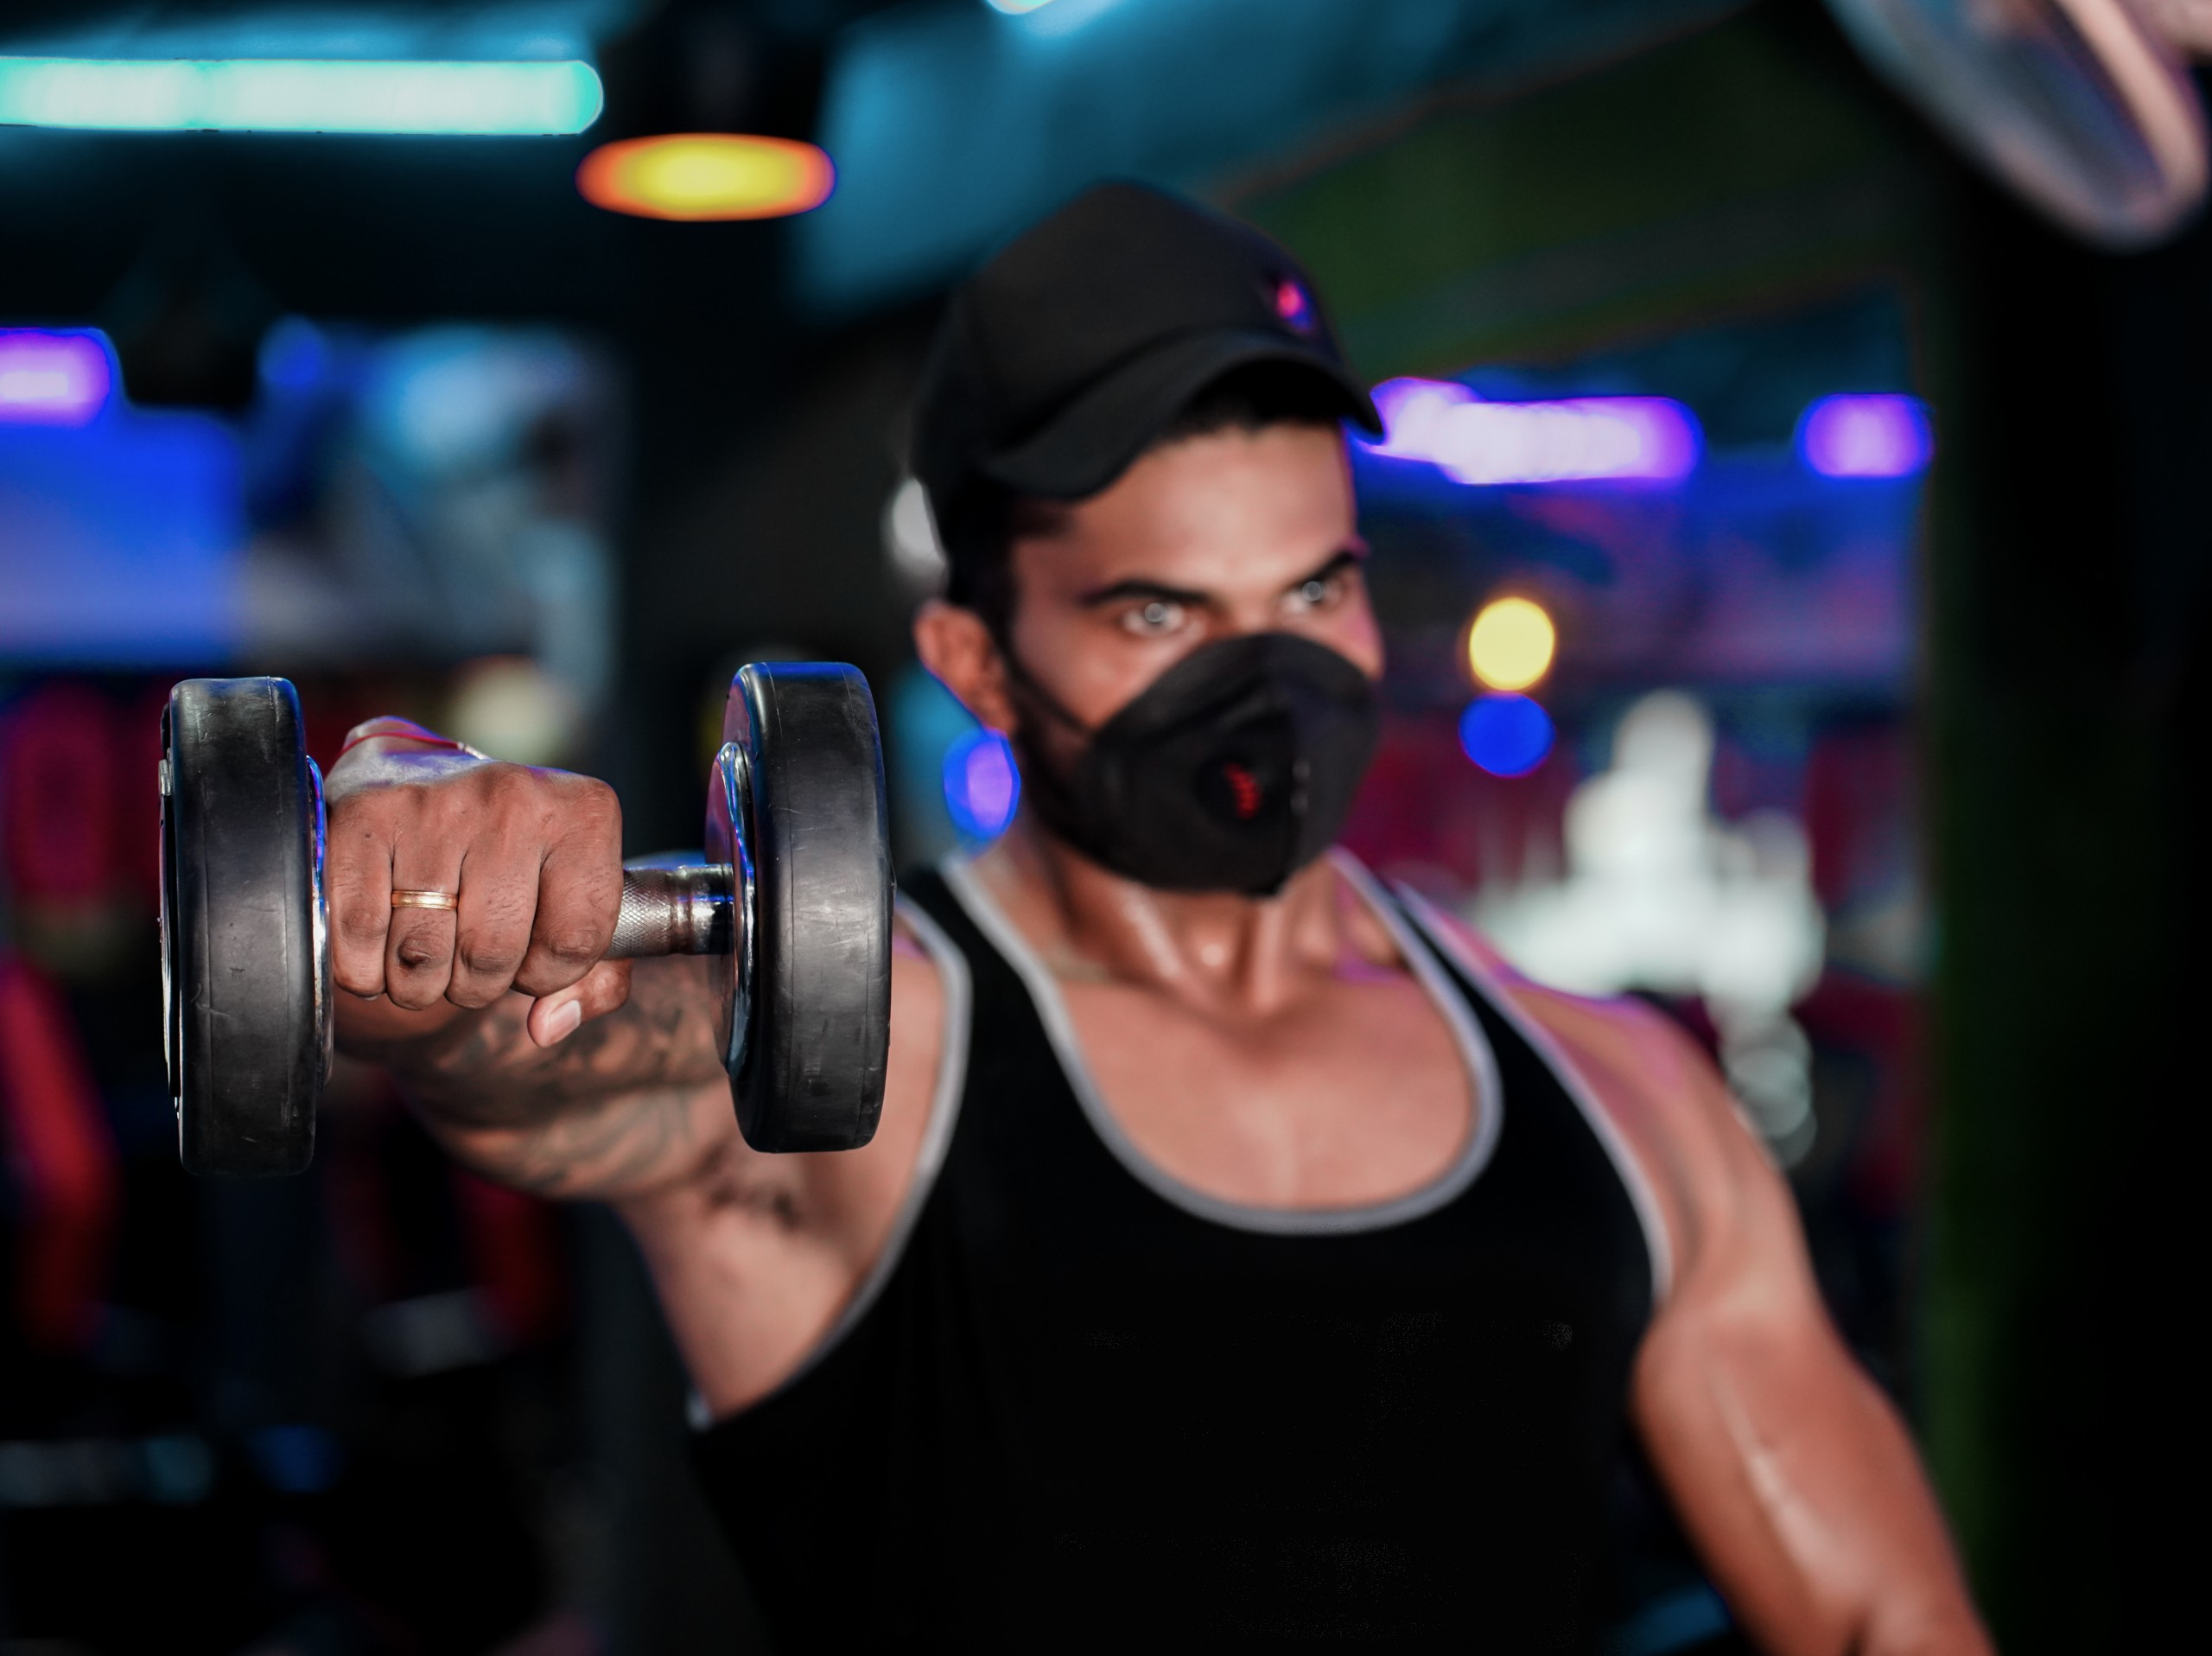 Fit Man pushes dumbells in a Gym